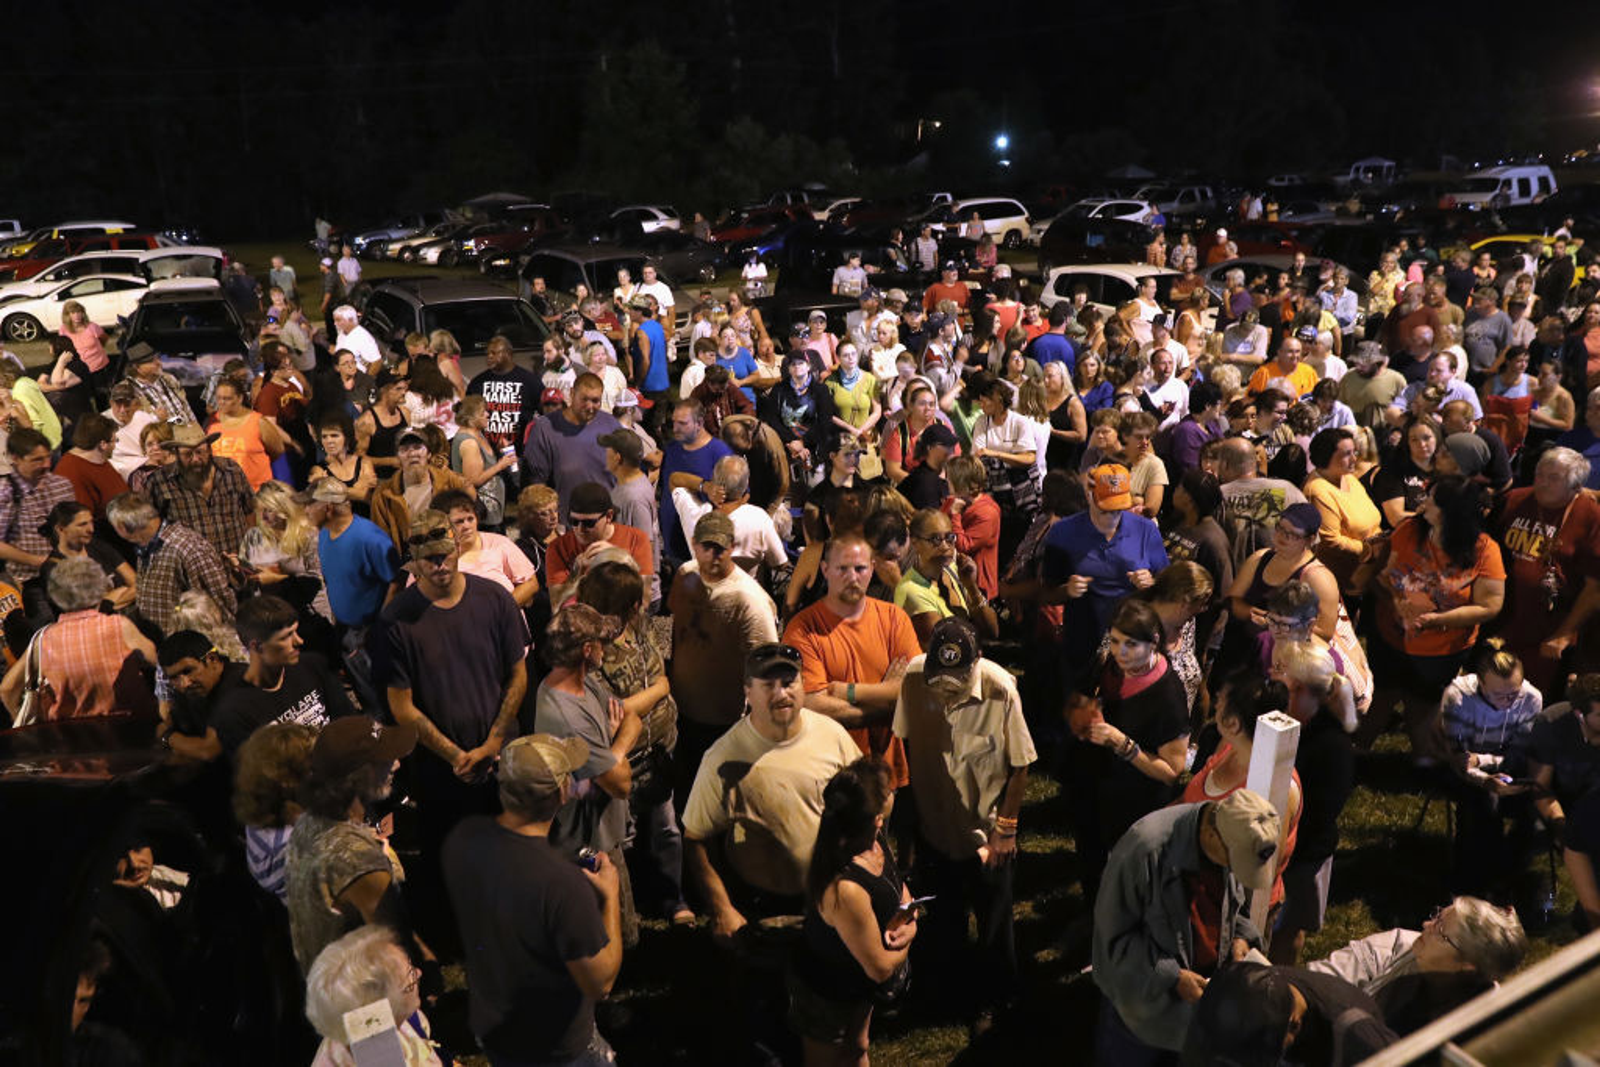 People wait to enter the Remote Area Medical mobile clinic early on July 21, 2017, in Wise, Va. RAM holds the three-day event annually at the Wise County Fairgrounds, one of many free weekend clinics they hold in Appalachia, providing dental, medical and vision services to thousands of uninsured and underinsured people. (John Moore/Getty Images)